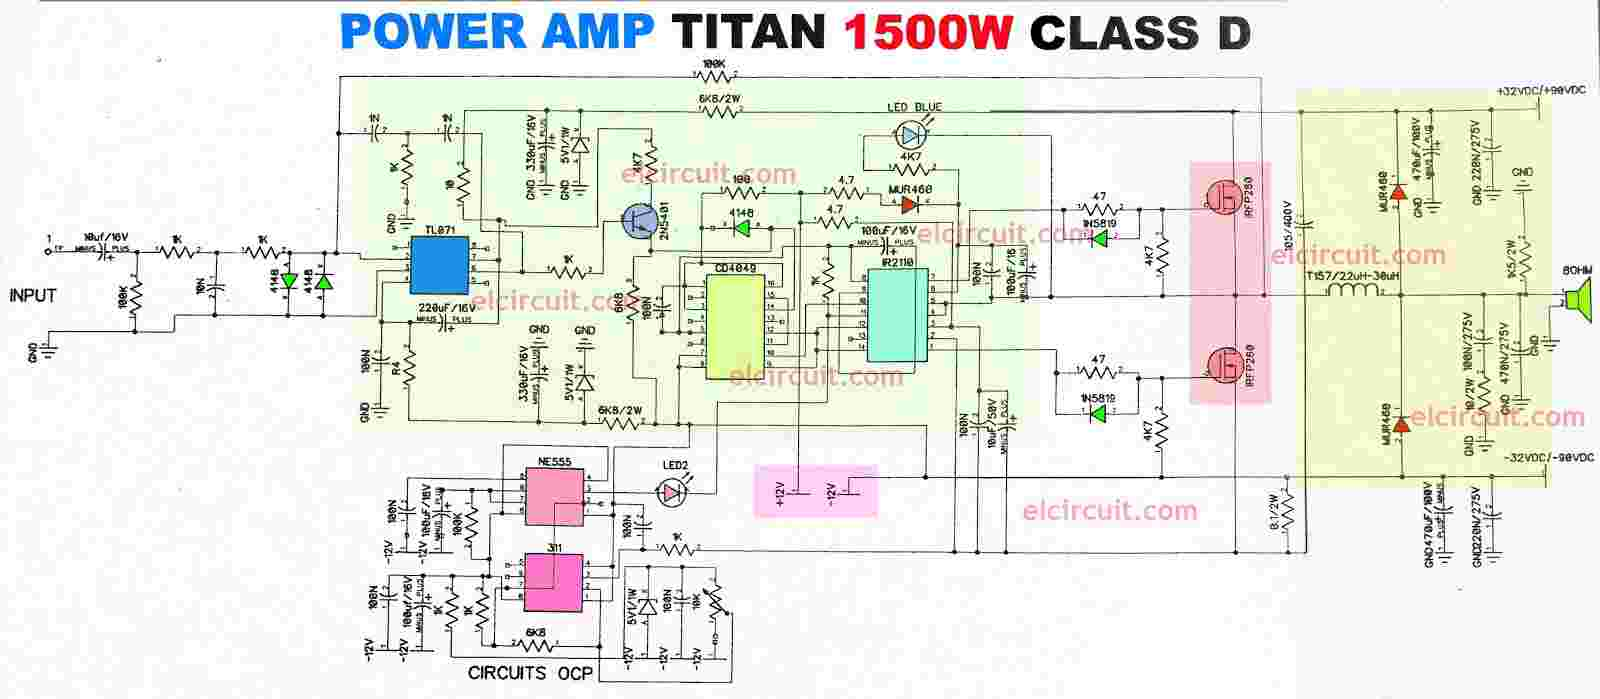 medium resolution of high power amplifier circuit diagram class d titan